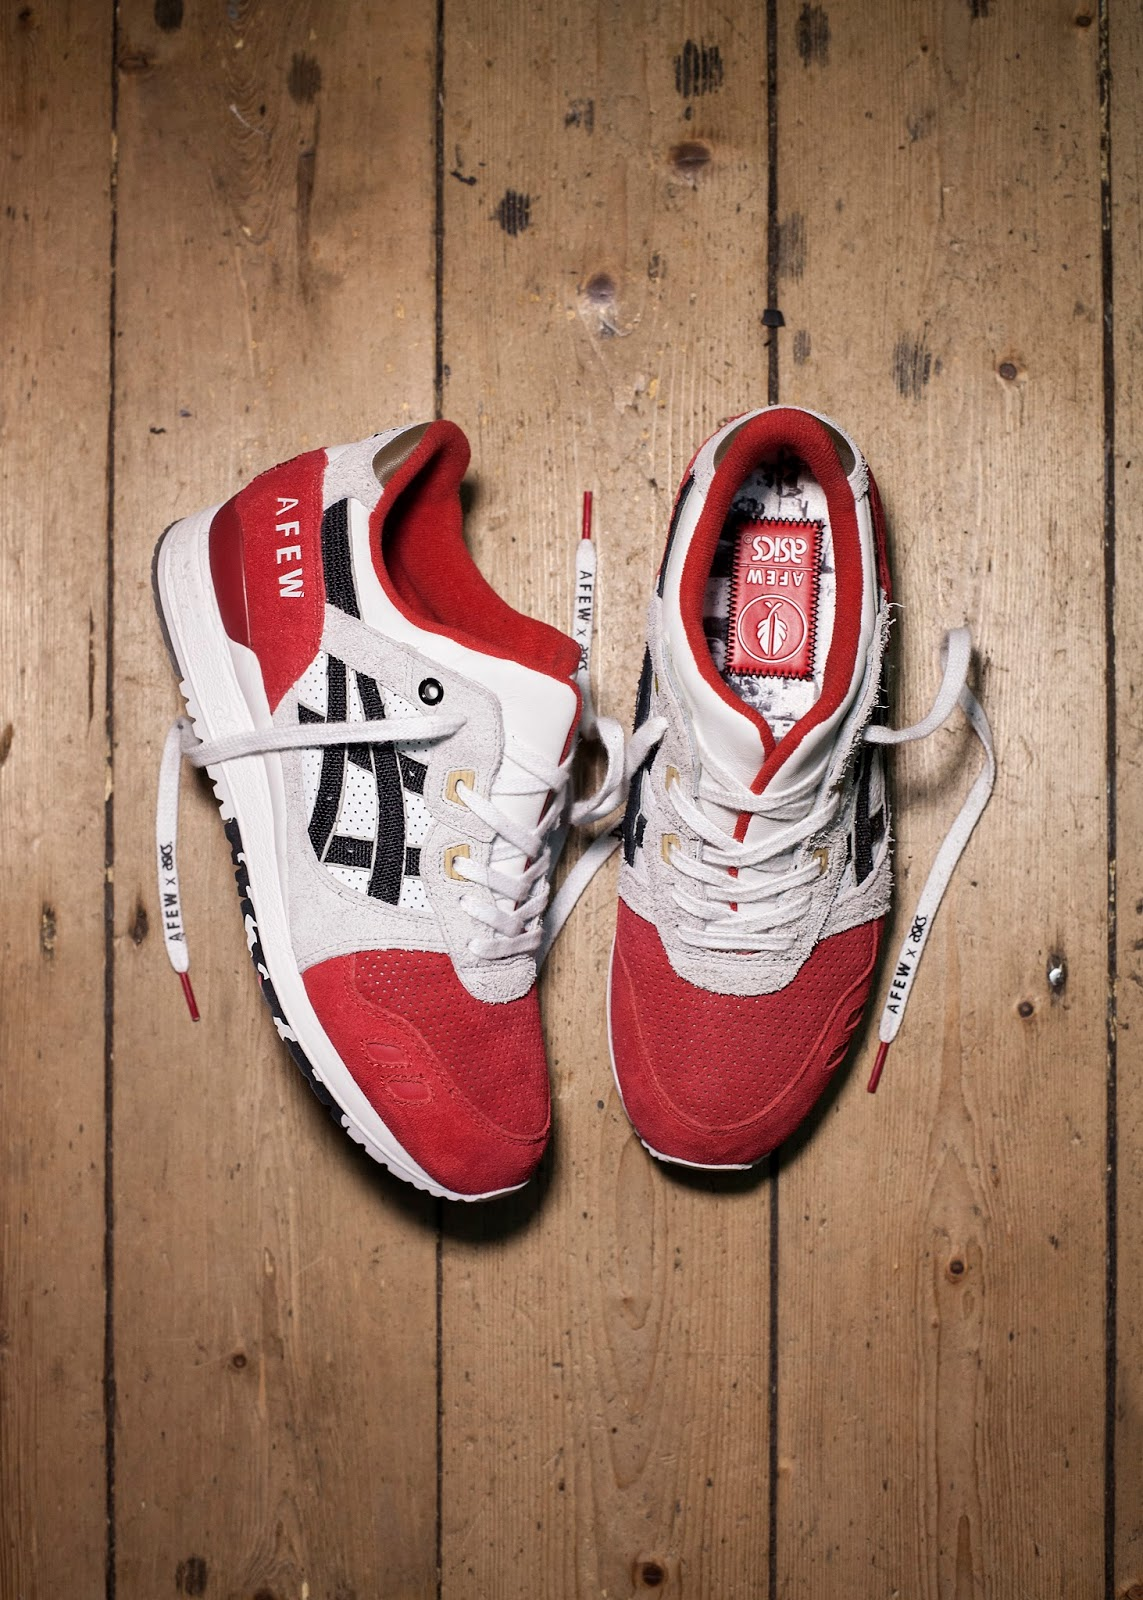 separation shoes a3766 4635f ASICS X AFEW GEL-LYTE III